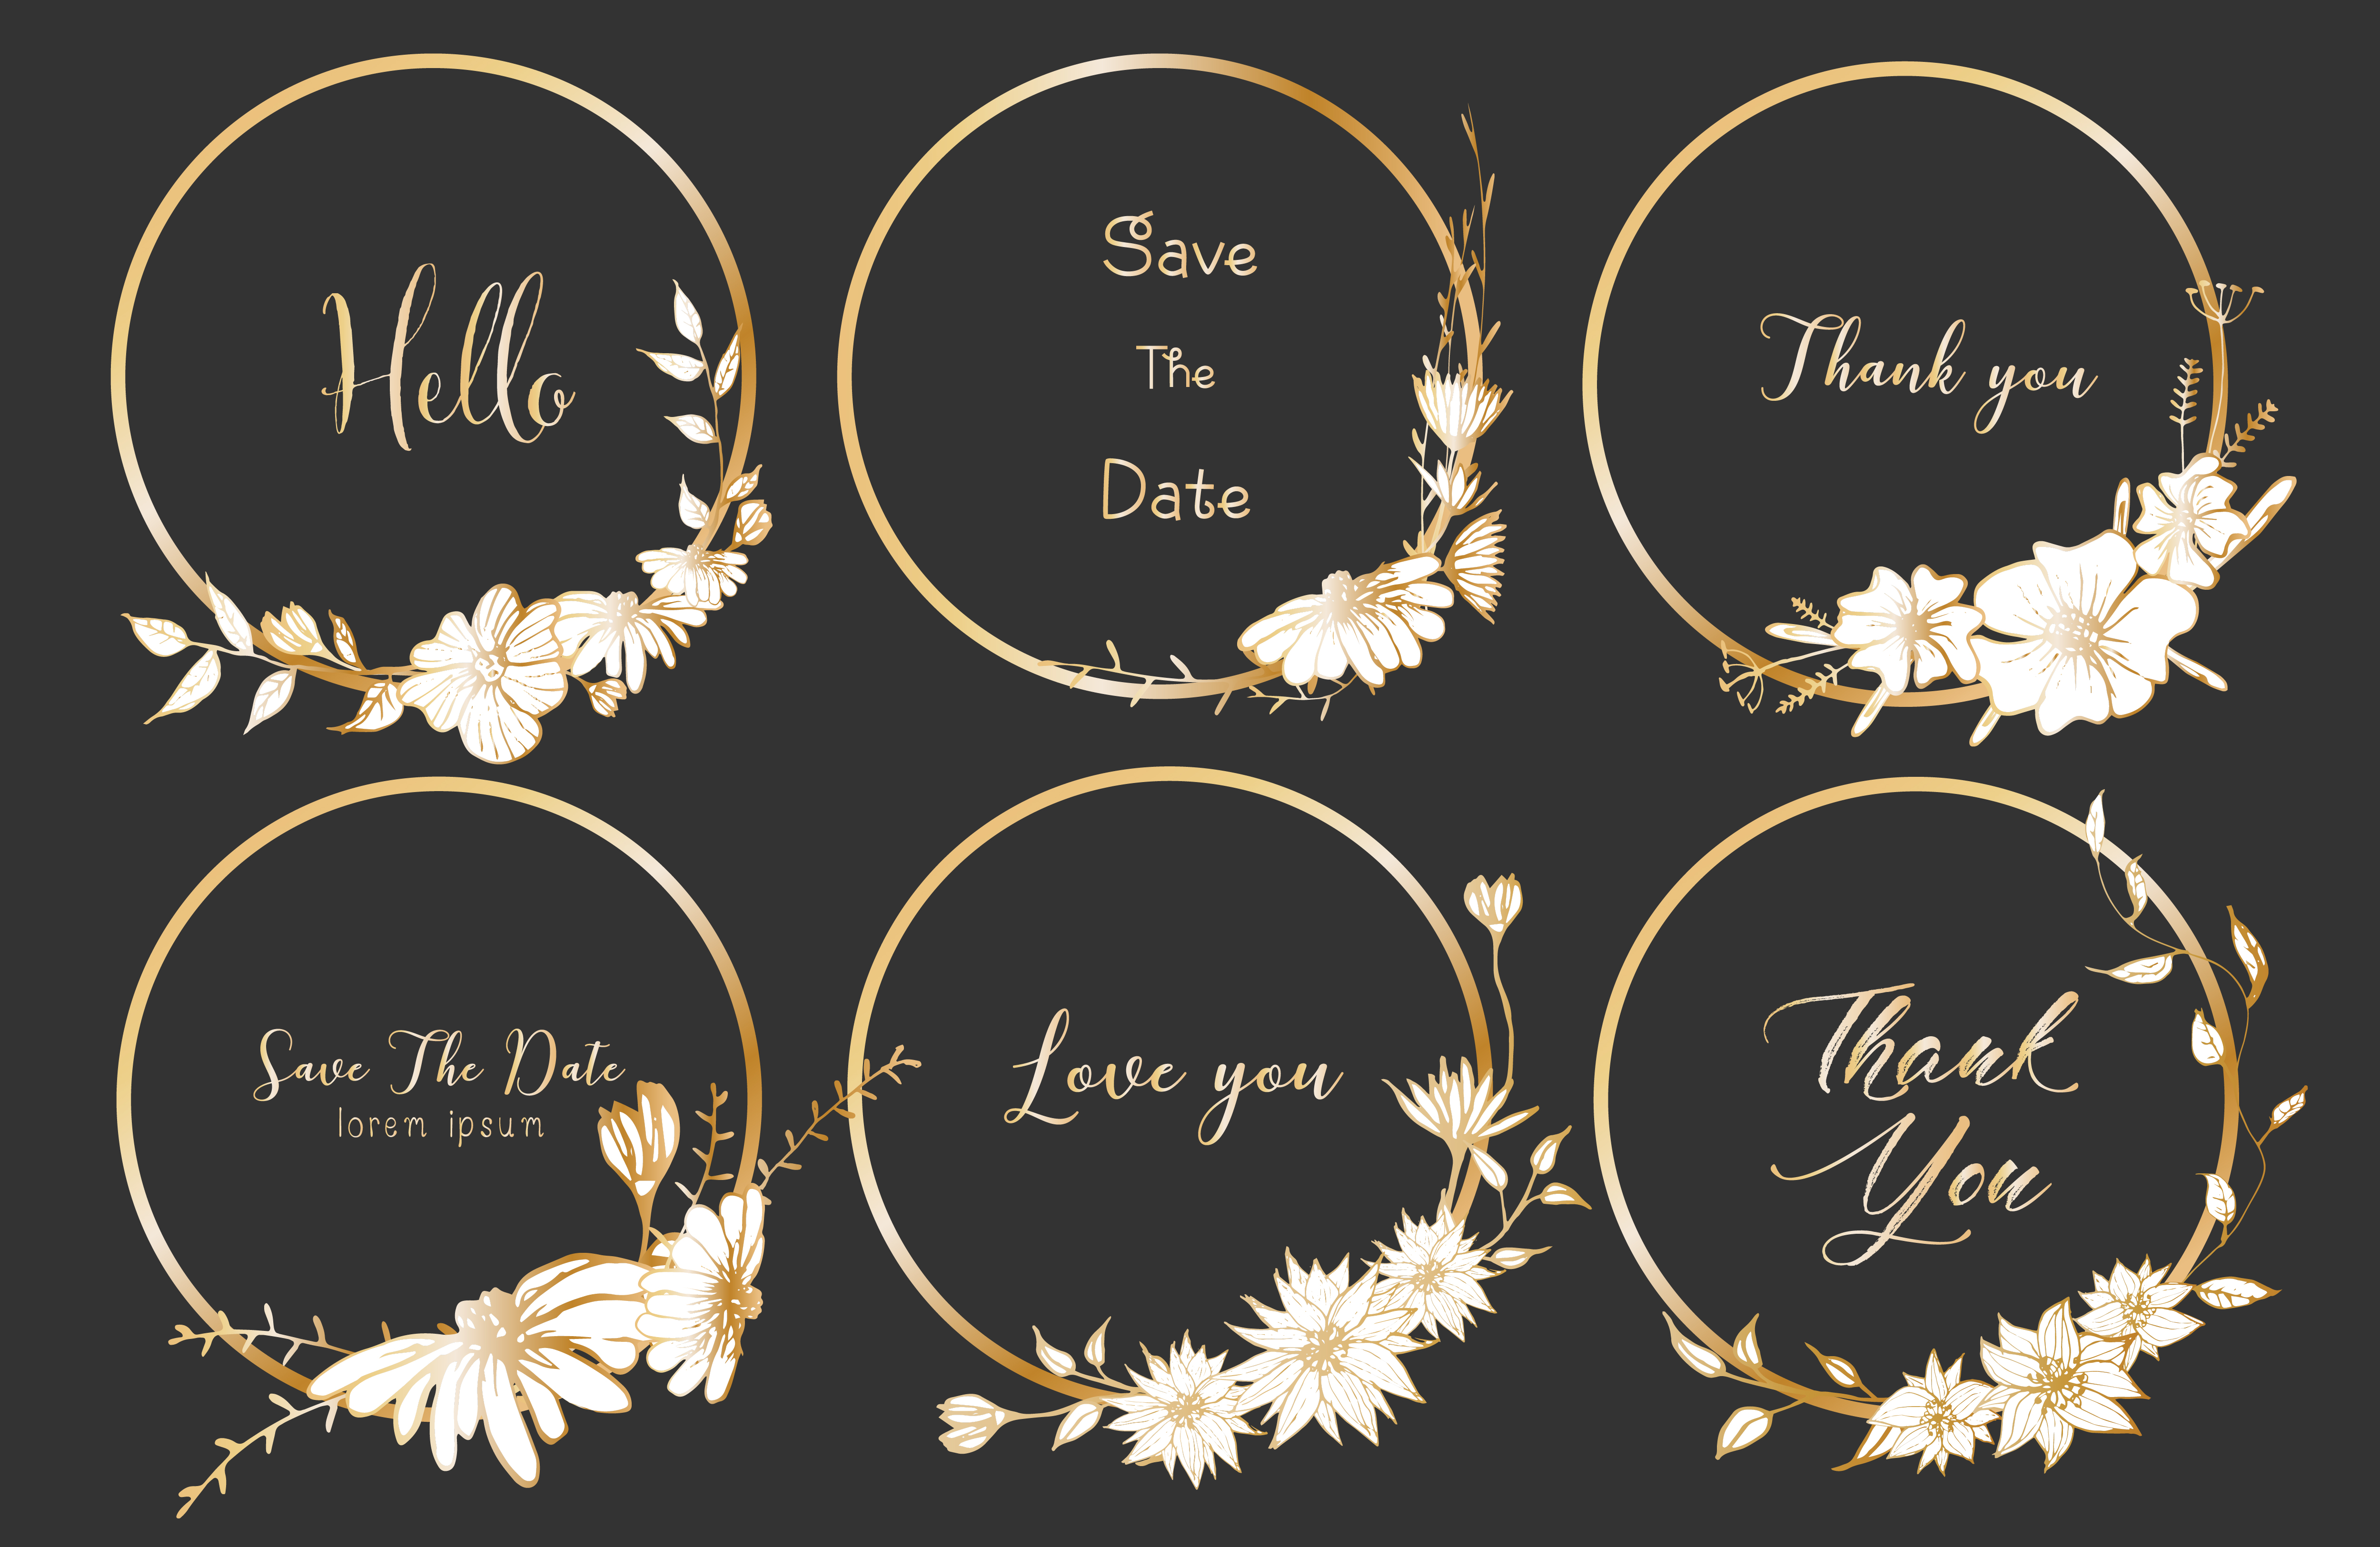 Set Of Dividers Round Frames Hand Drawn Flowers Botanical Composition Decorative Element For Wedding Card Invitations Vector Illustration 563937 Download Free Vectors Clipart Graphics Vector Art